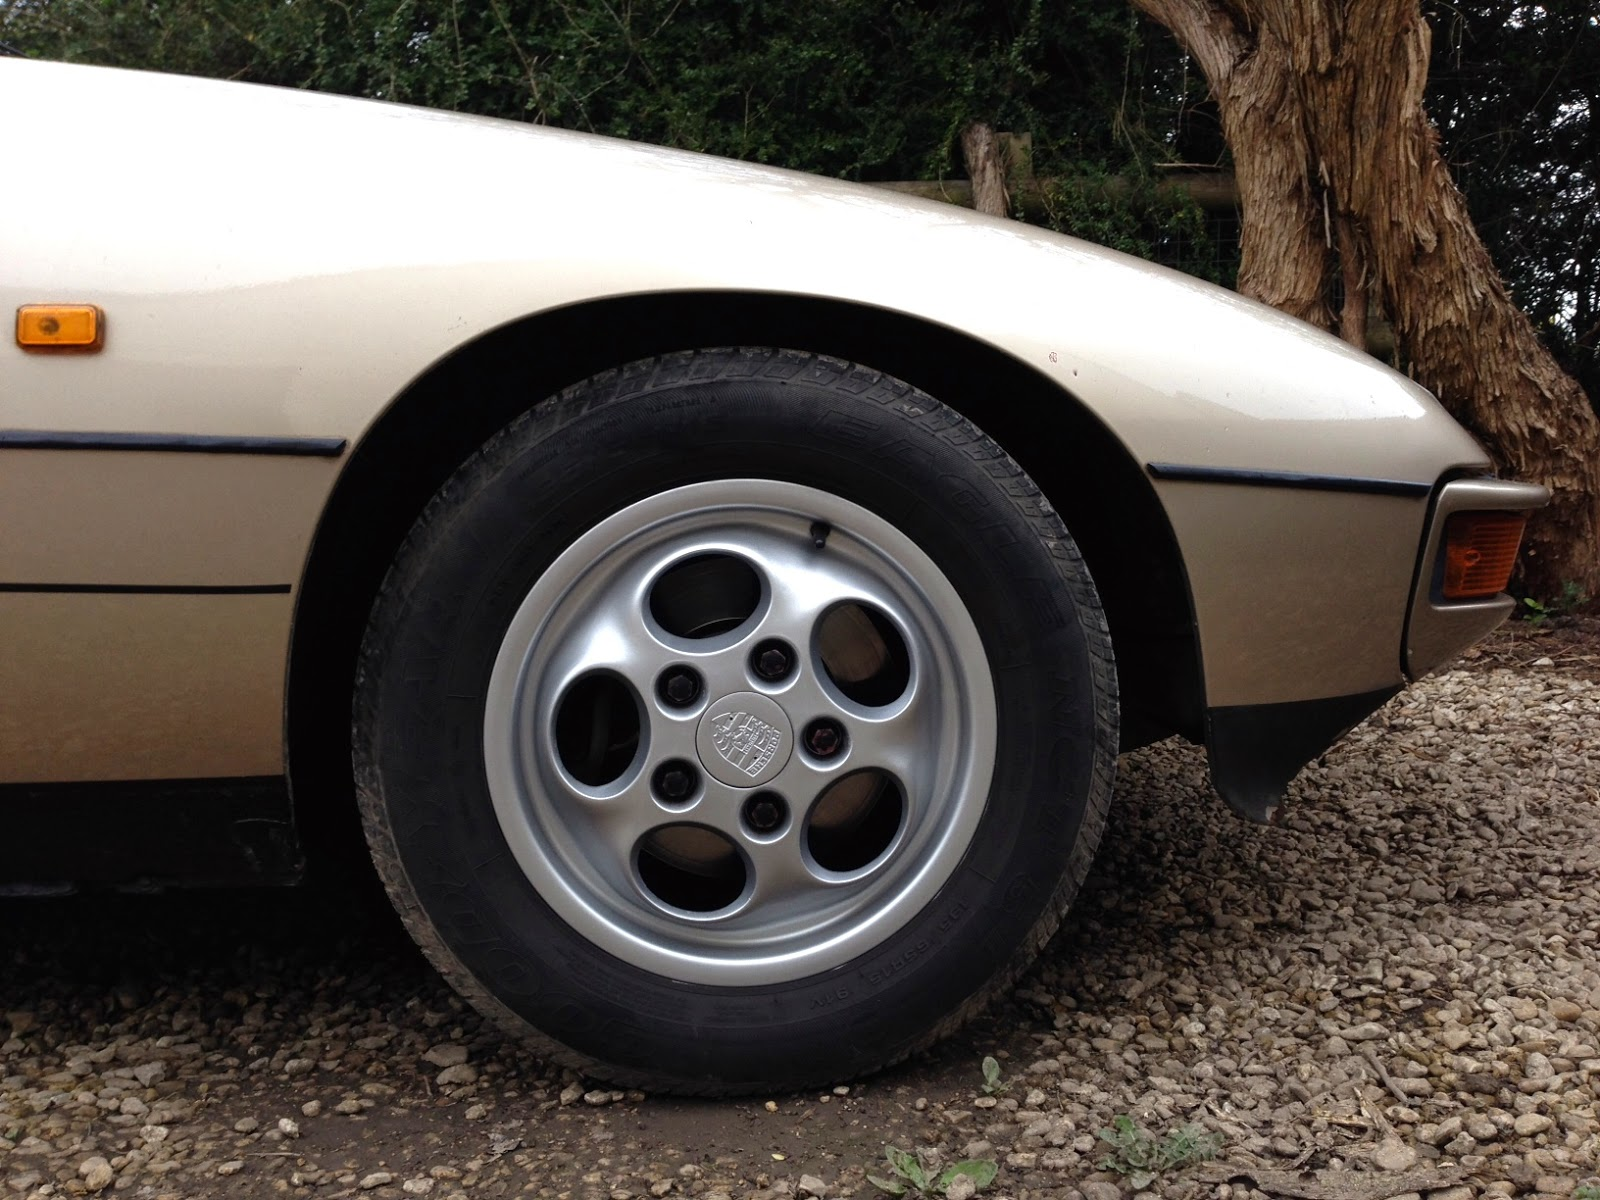 1987 Porsche 924S front wheel and tyre